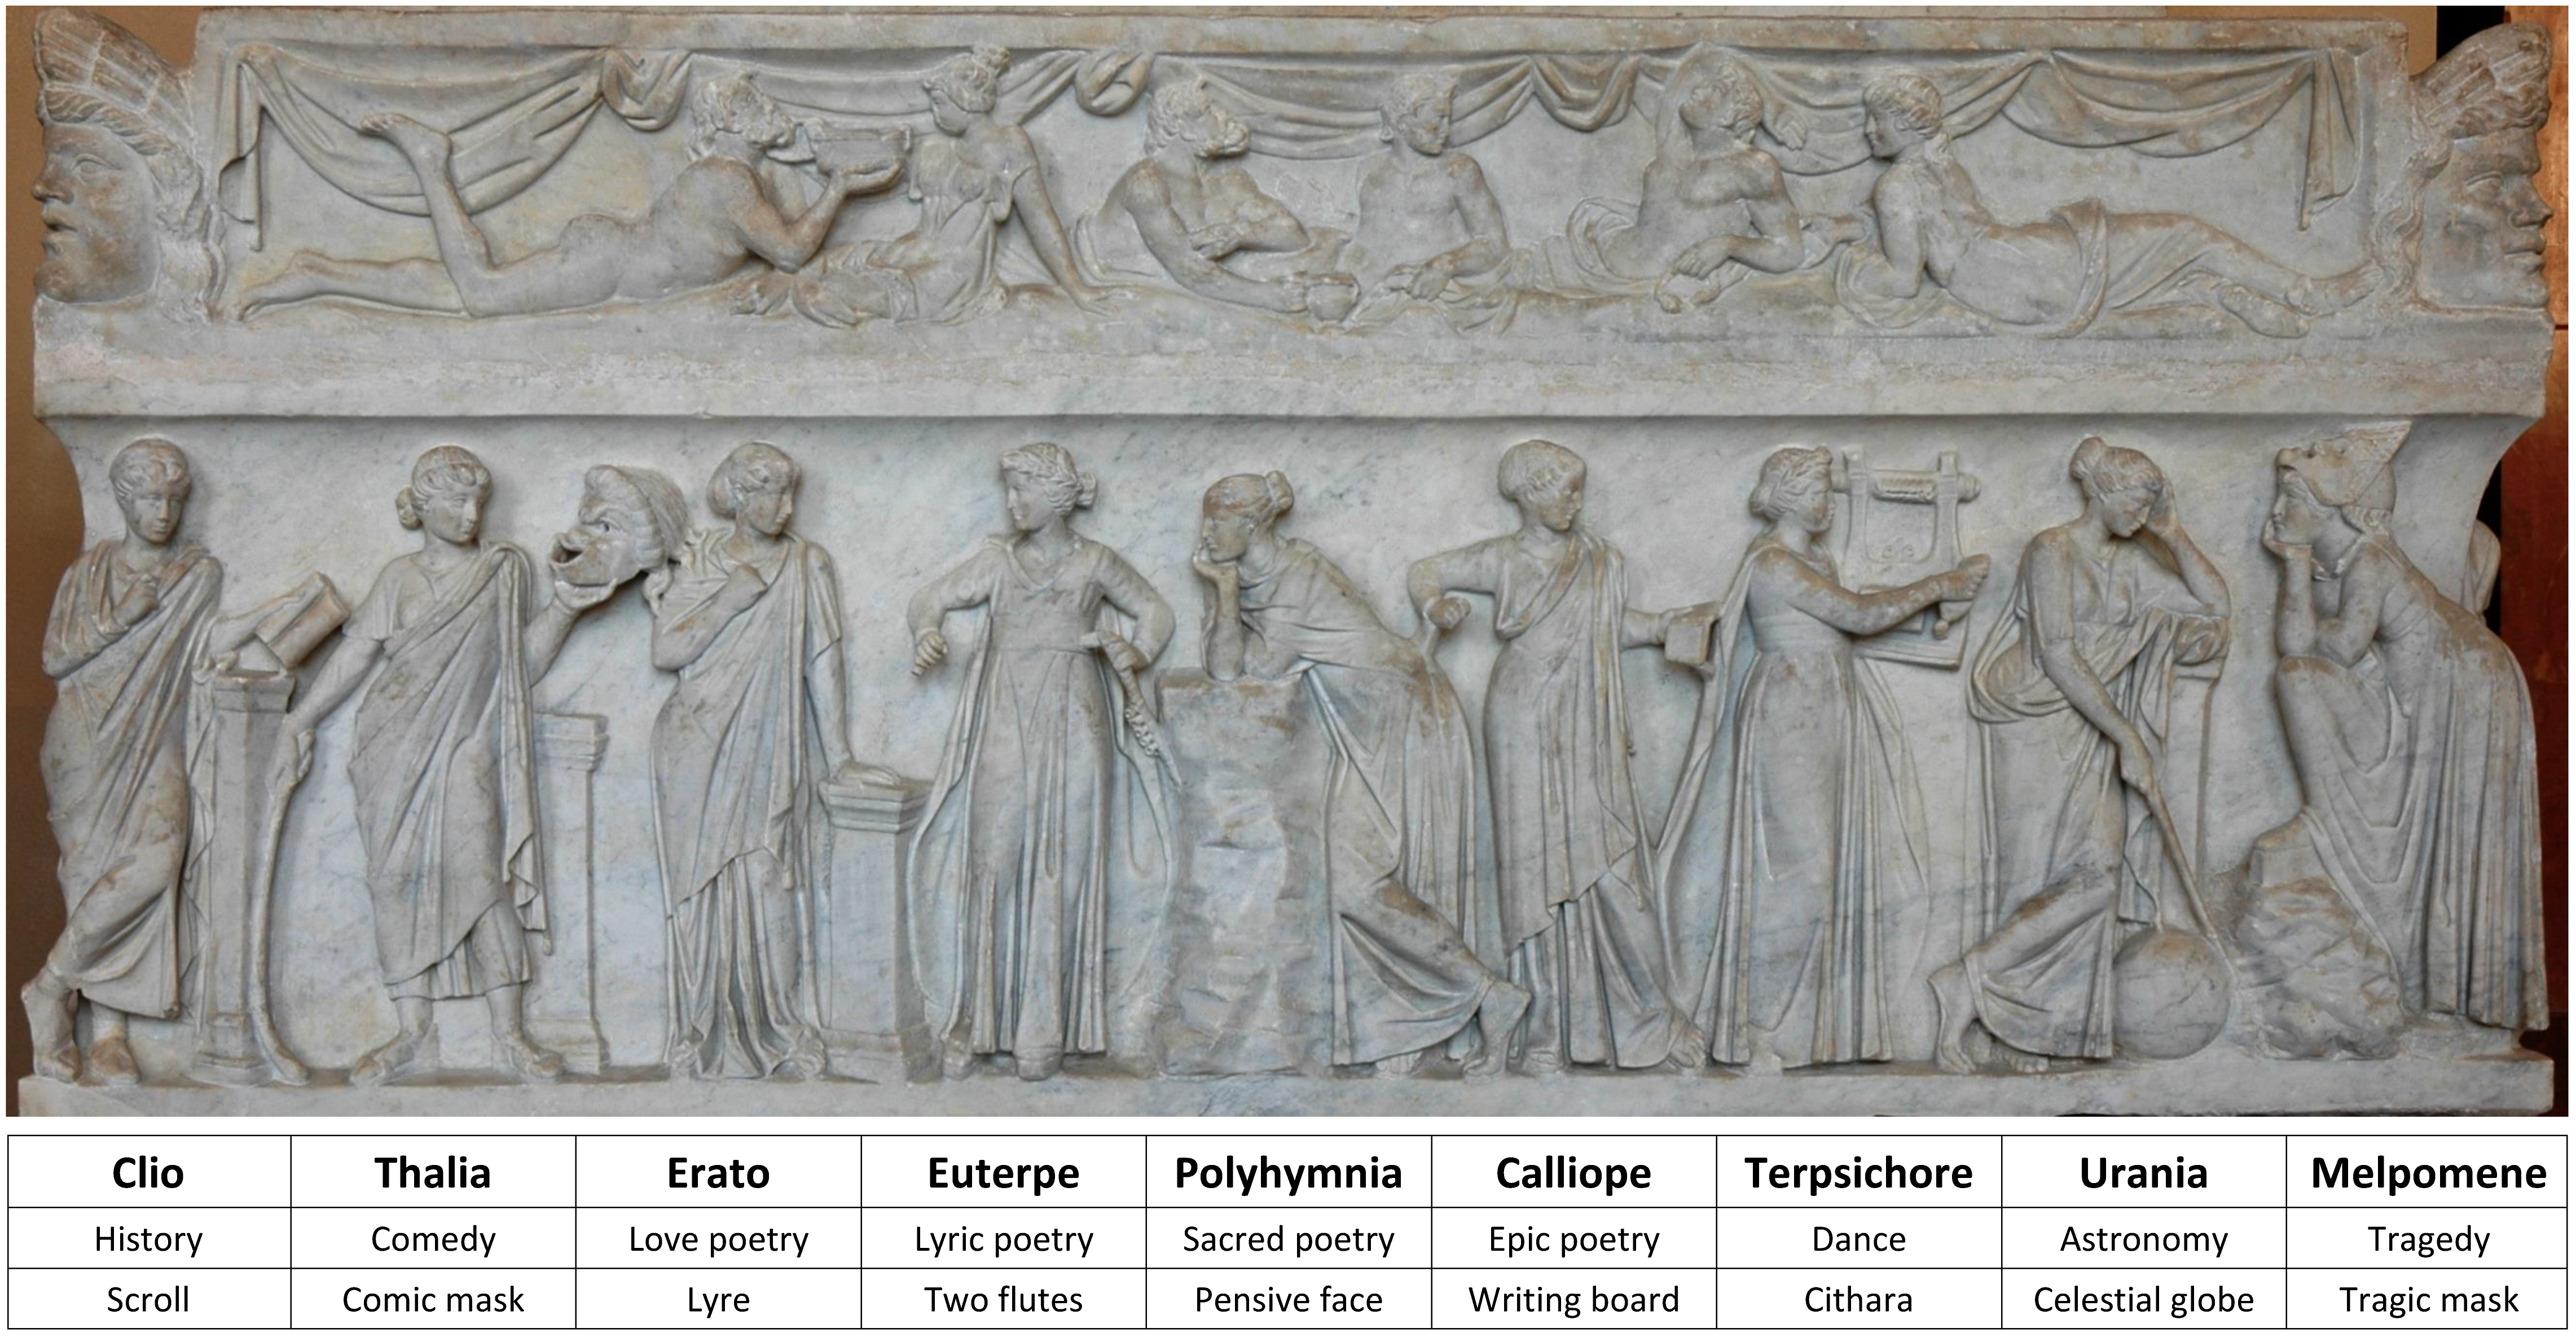 https://upload.wikimedia.org/wikipedia/commons/4/47/9_muses_and_their_atributes.png